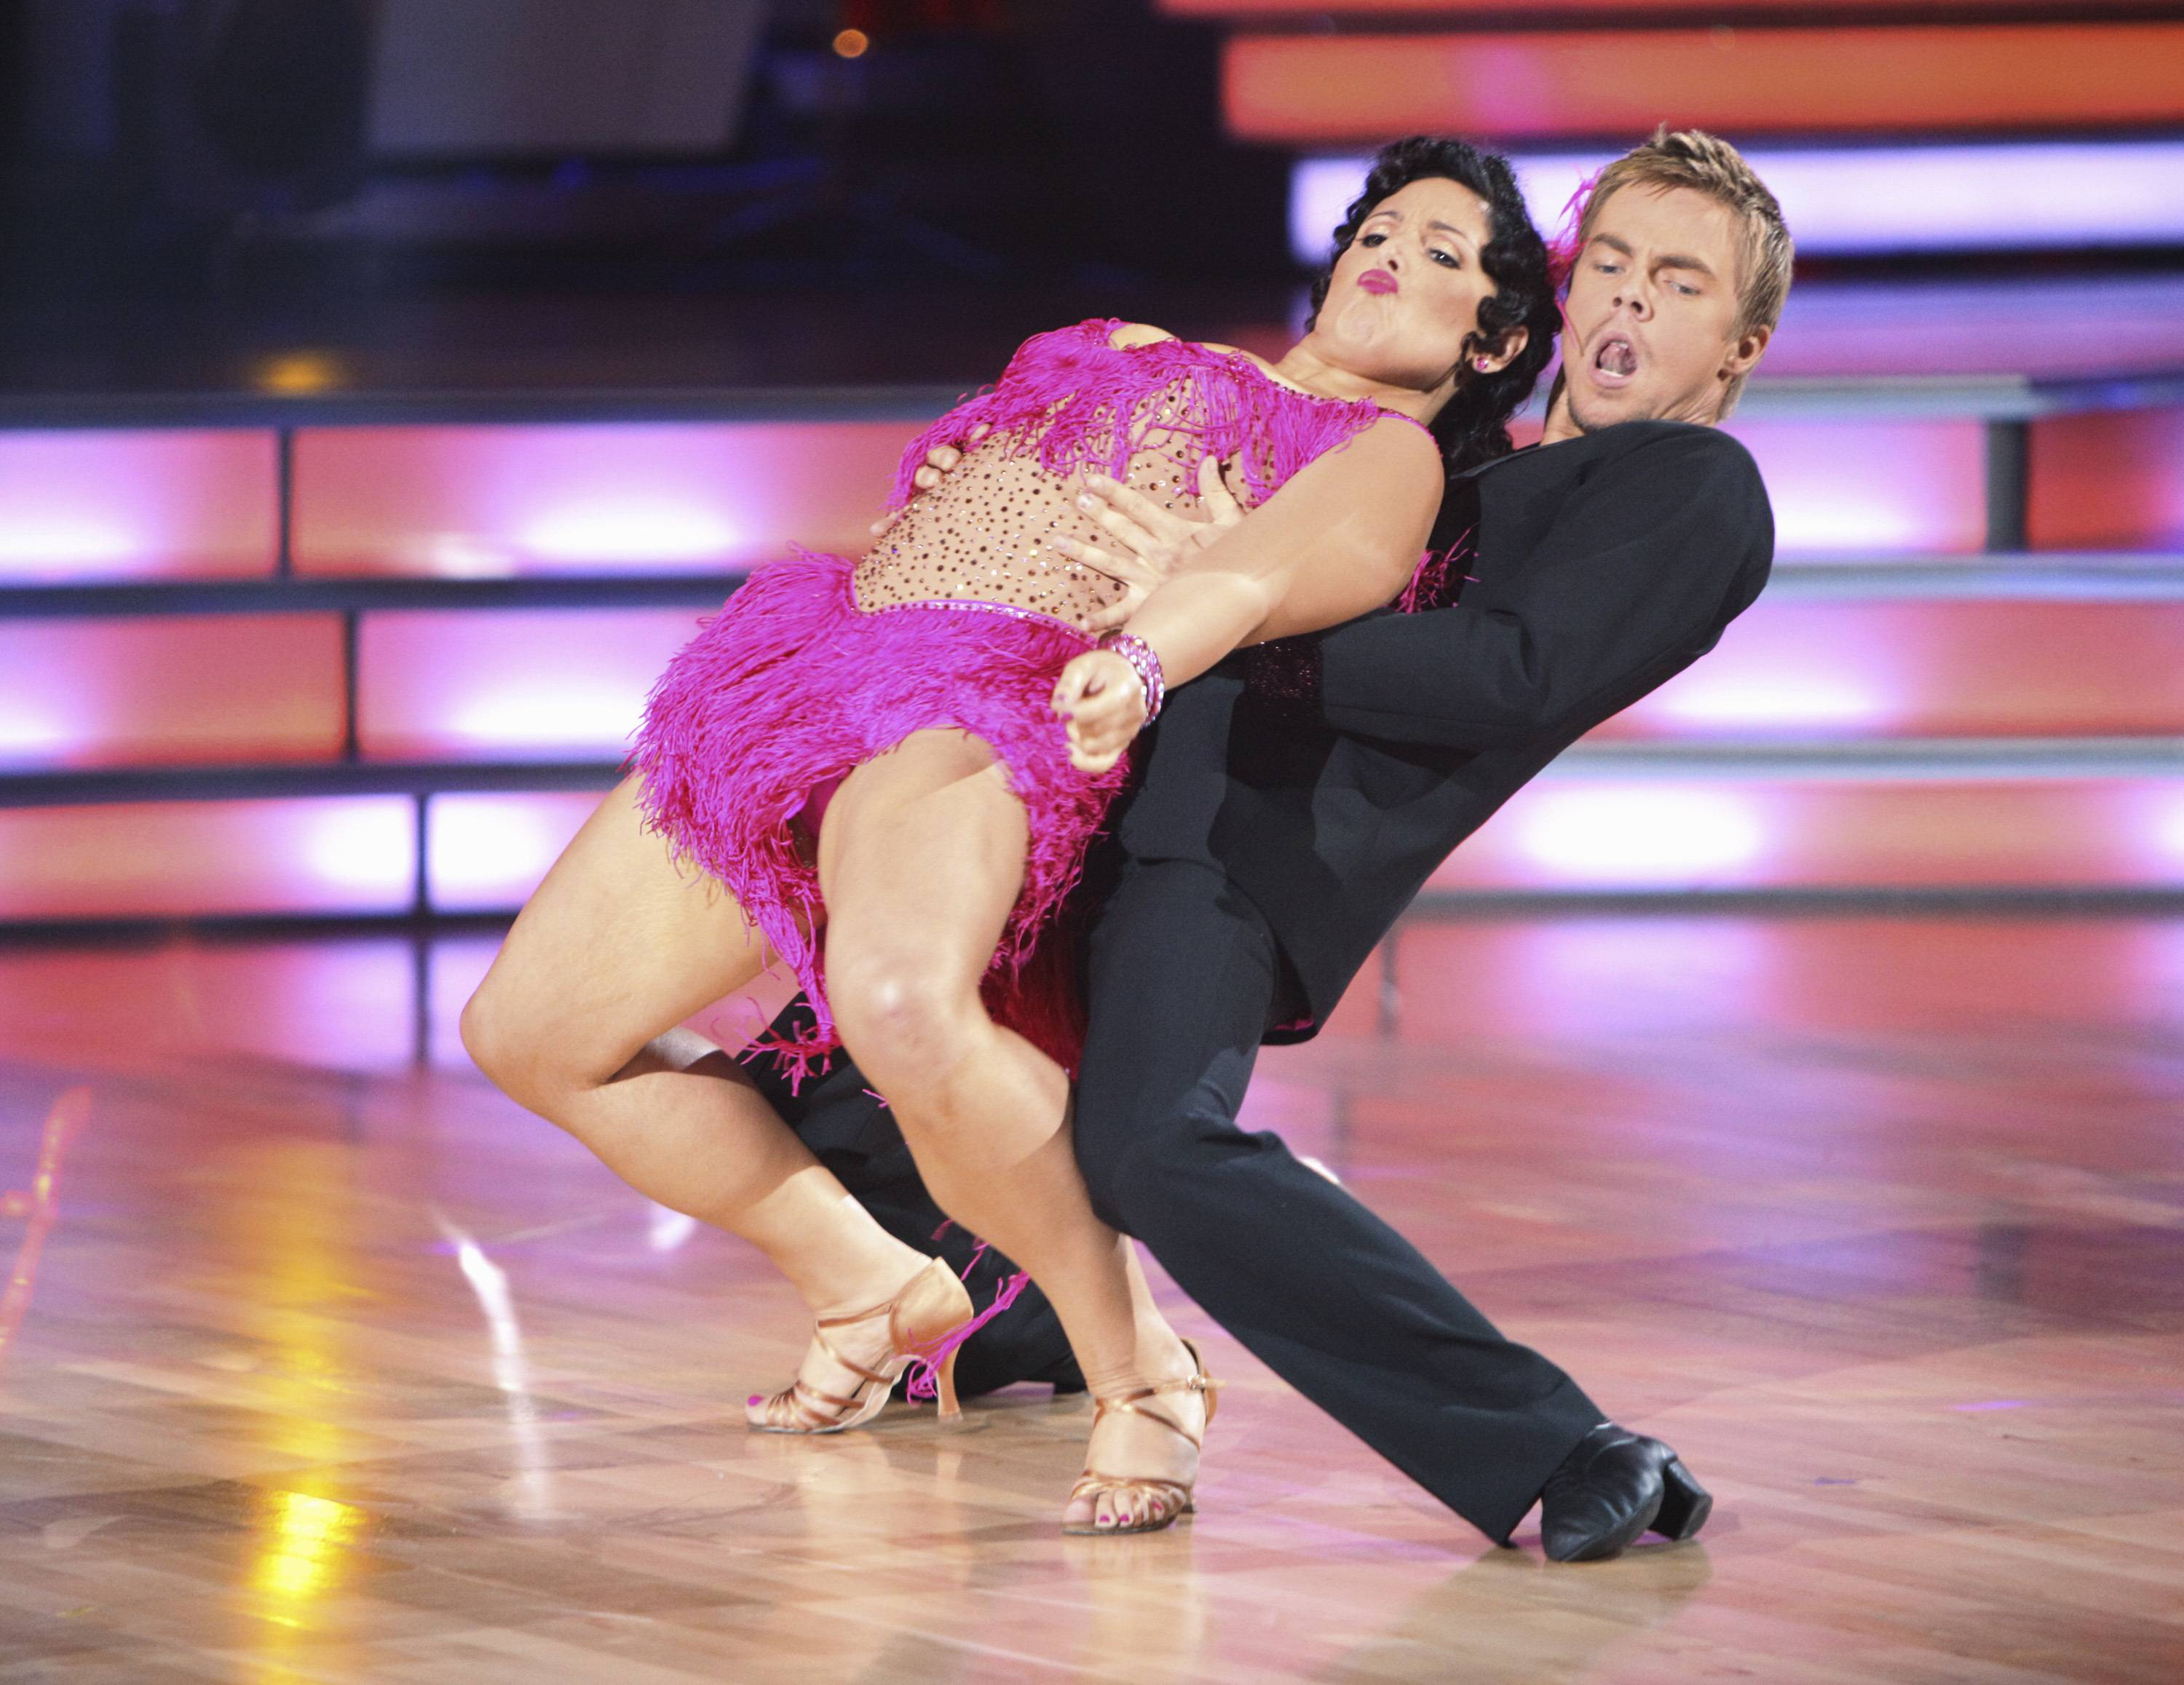 Ricki Lake and her partner, Derek Hough, received the top score from the judges on ABC's